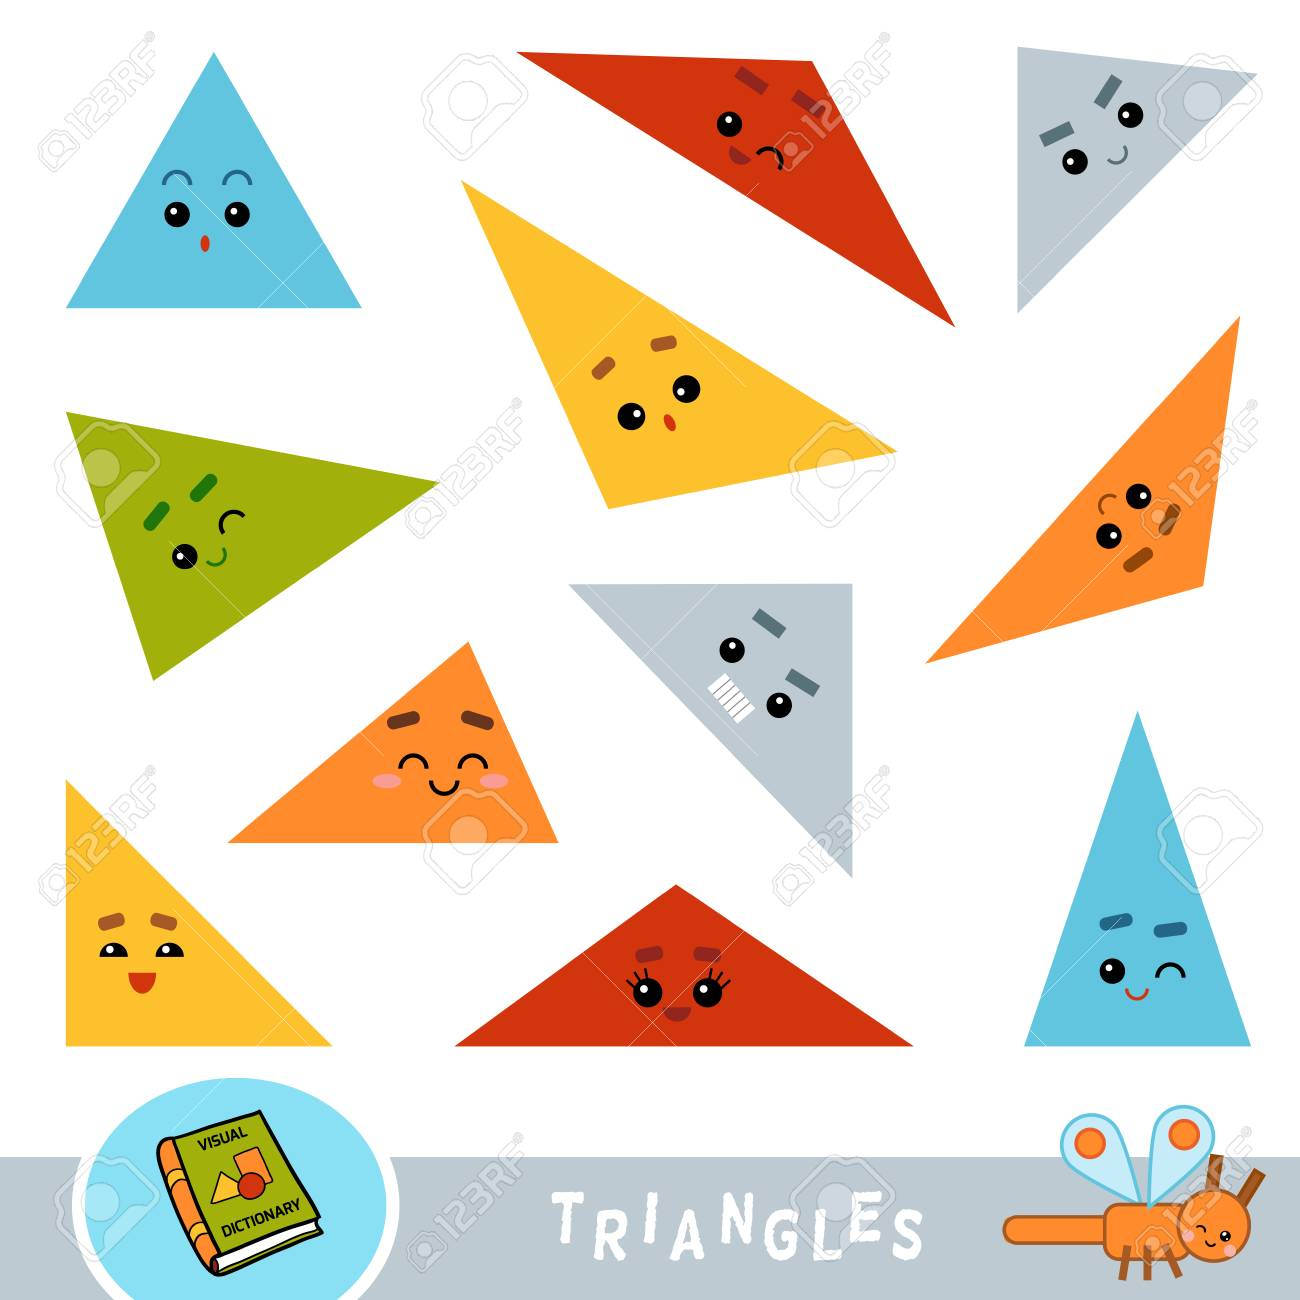 Colorful set of triangles. Visual dictionary for children about geometric shapes. - 113442586